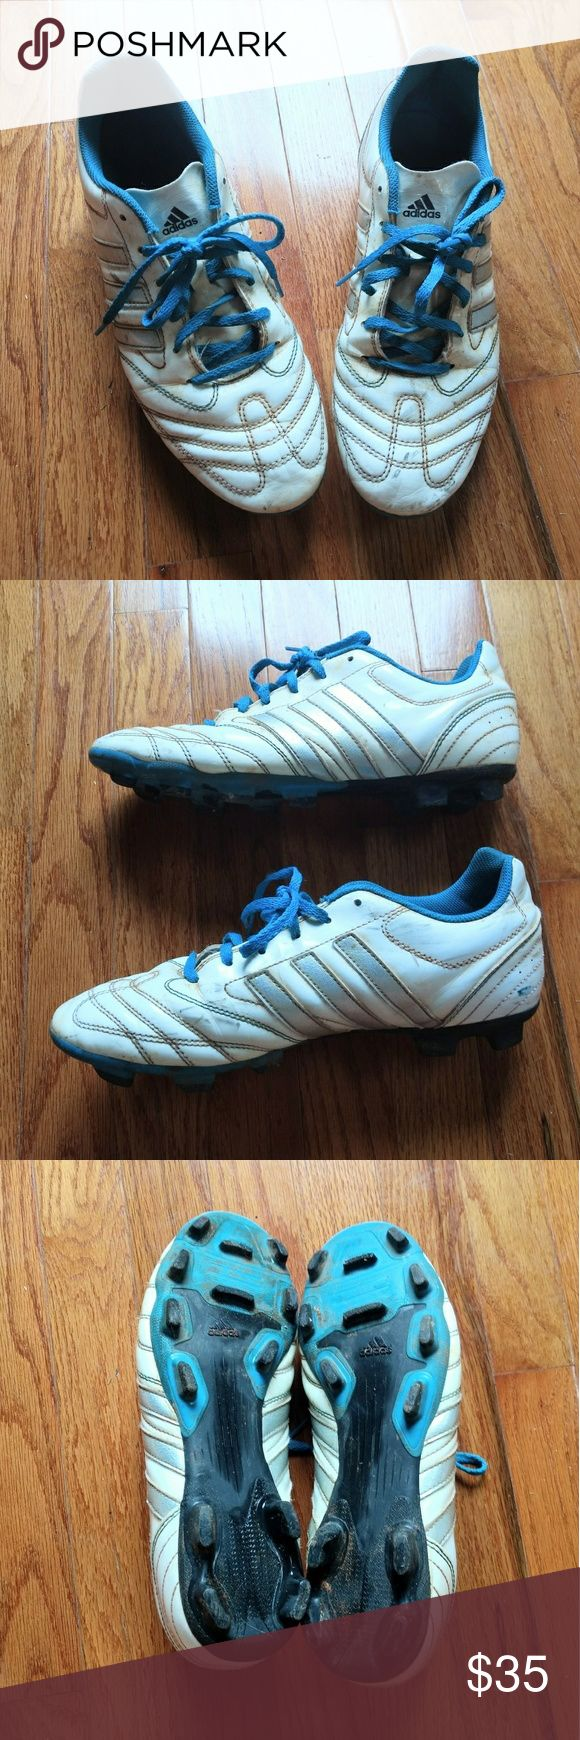 FINAL Adidas, 10, Striped Soccer Sports Cleats